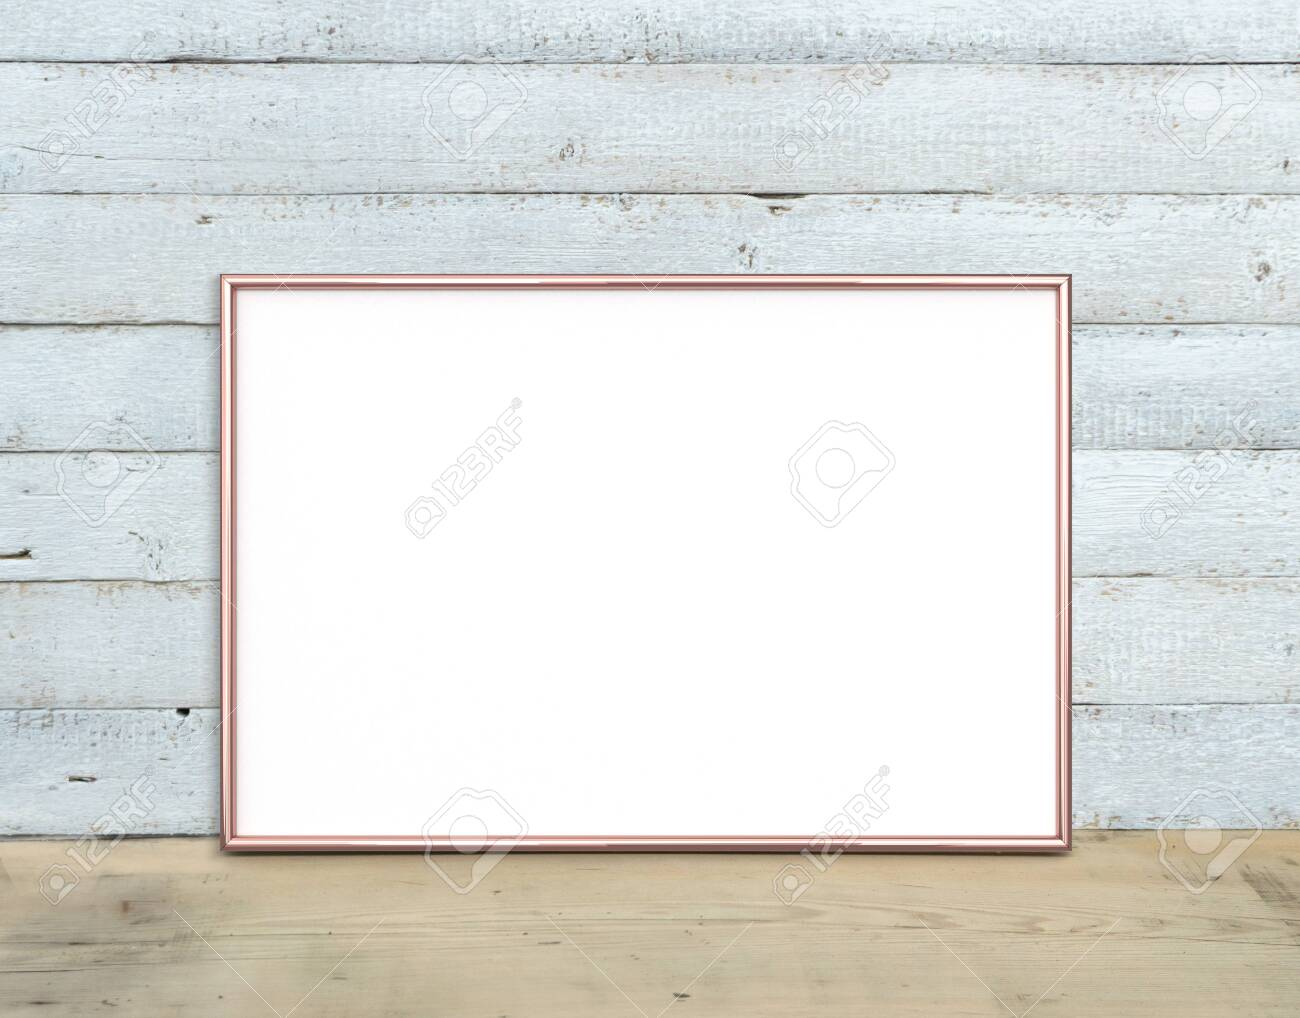 Rose Gold A4 horizontal Frame mockup stands on a wooden table on a painted white wooden background. Rustic style, simple beauty. 3 render. - 125702711